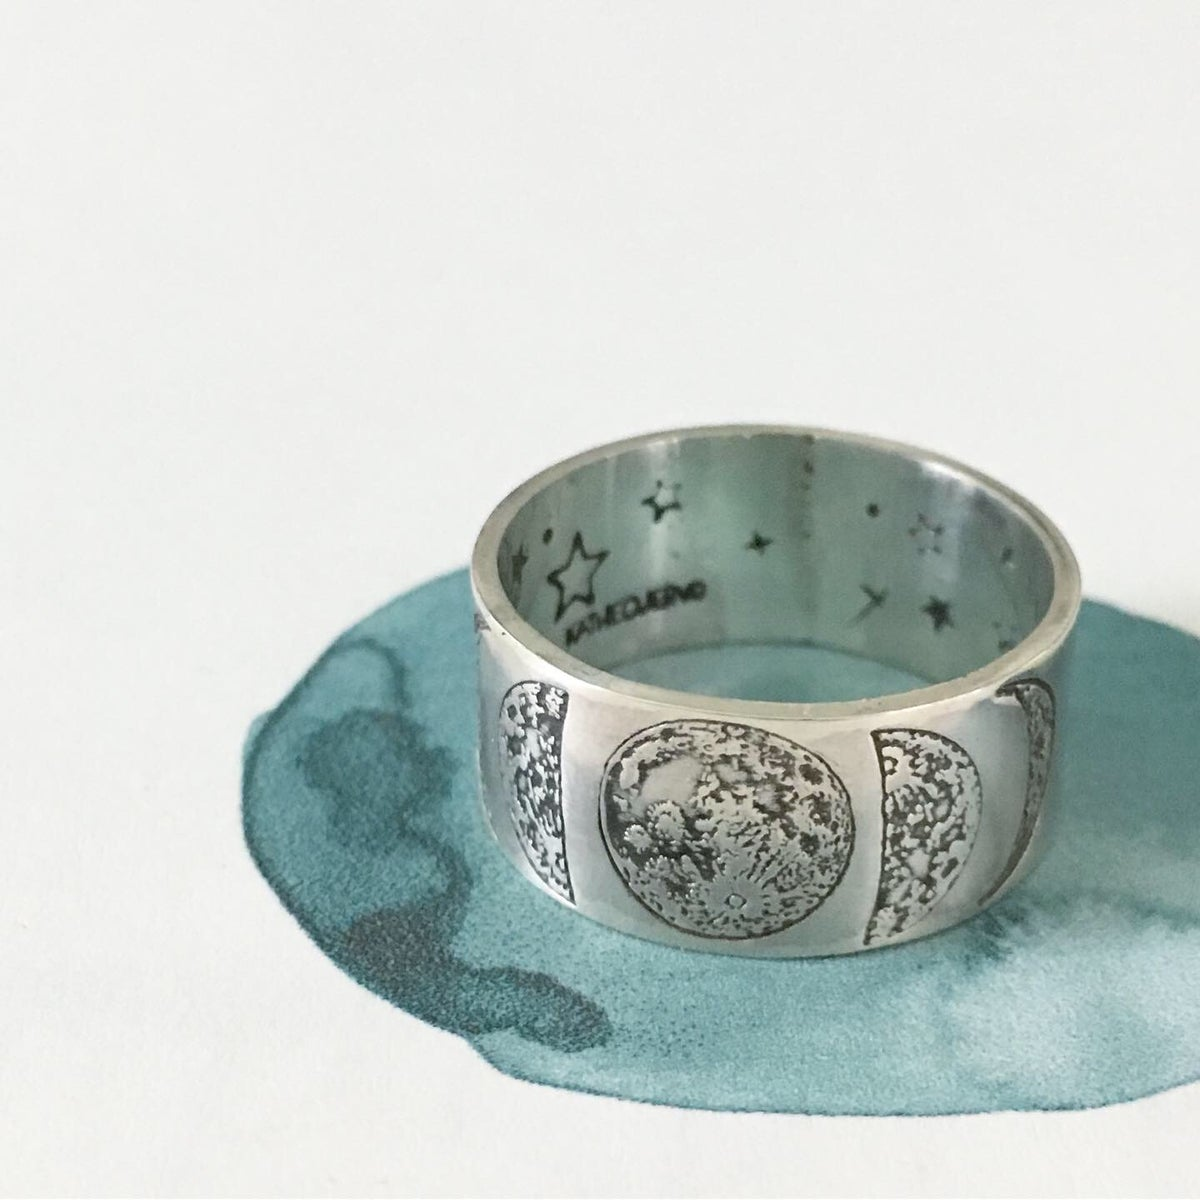 Image of Moon phase ring